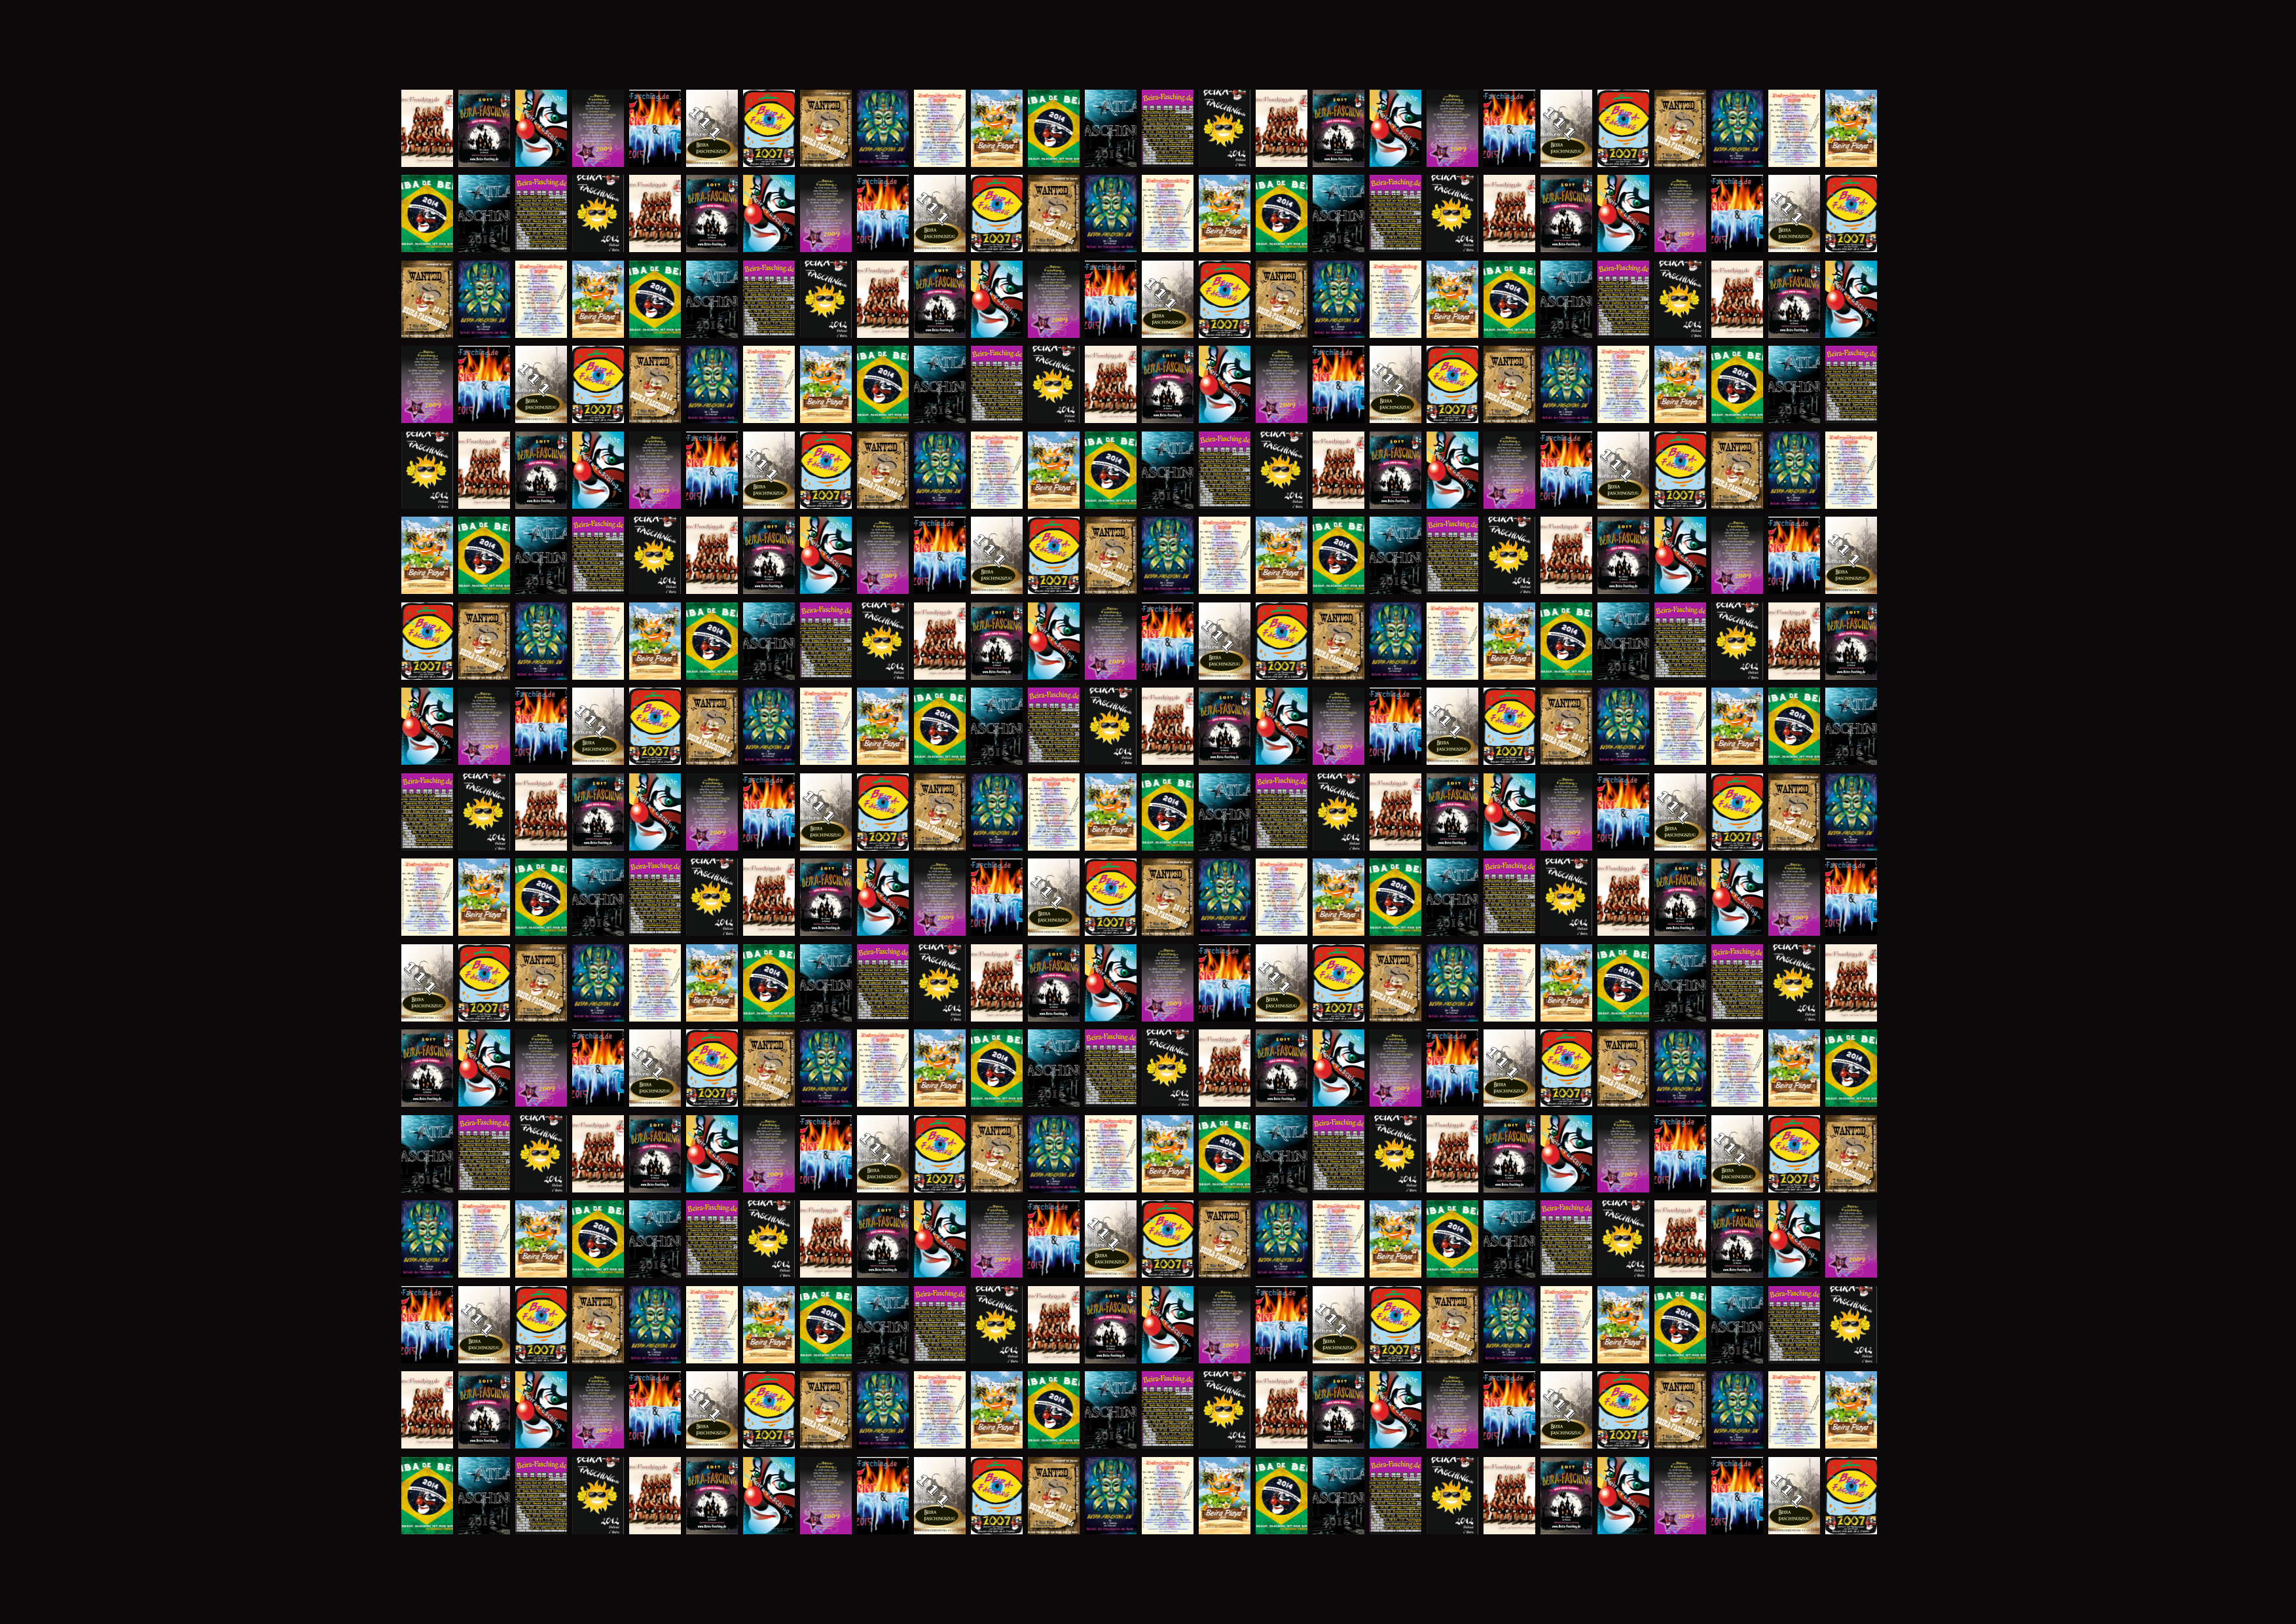 2020-FigrCollage-Exported-Image qudrate black